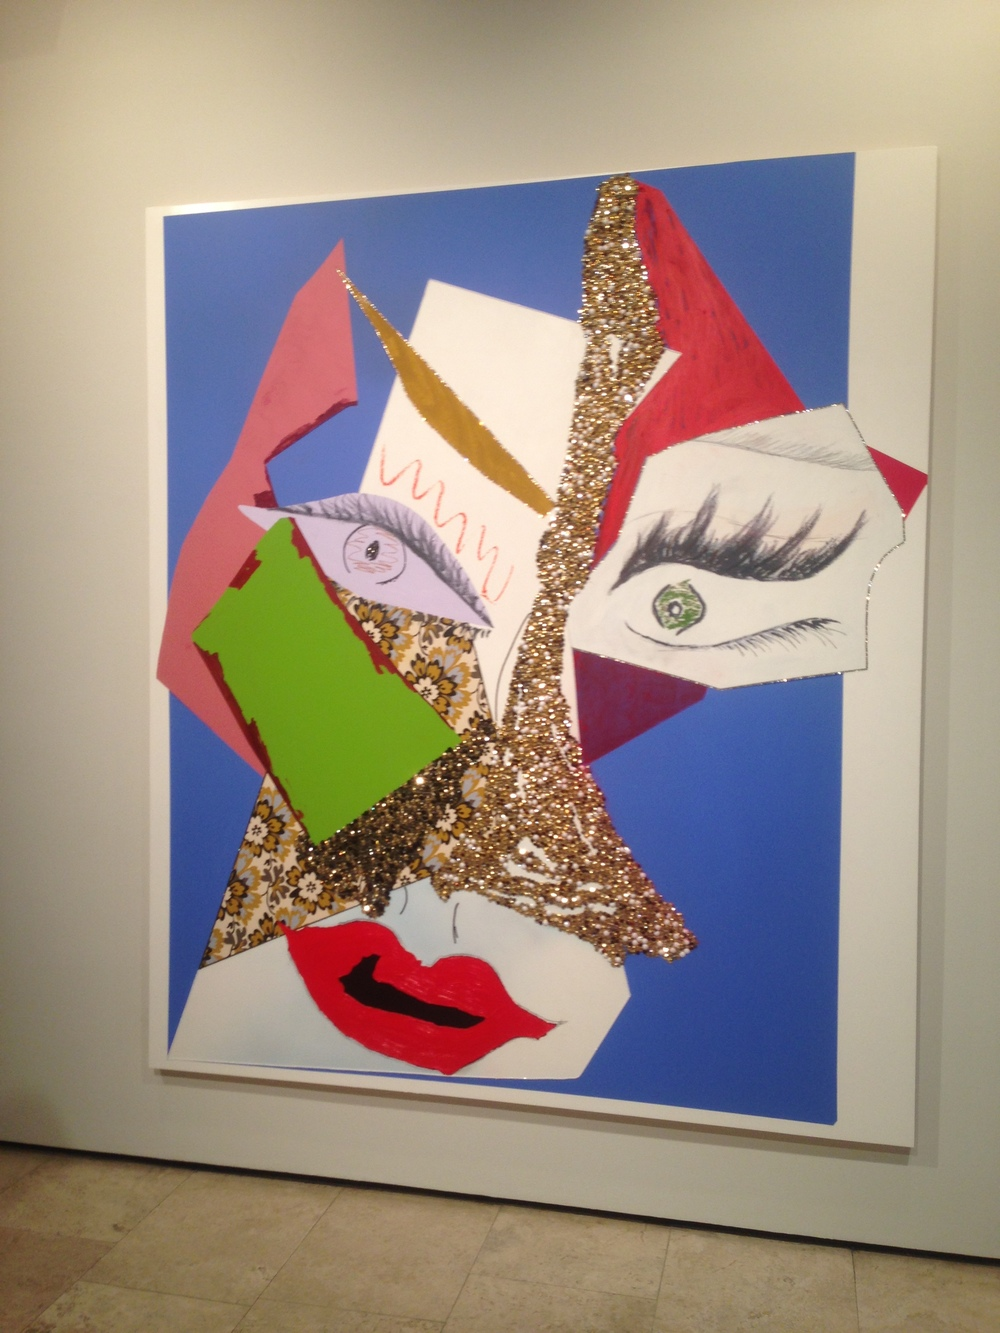 From 'Tete de Femme' by Mickalene Thomas at Lehmann  Maupin, New York.